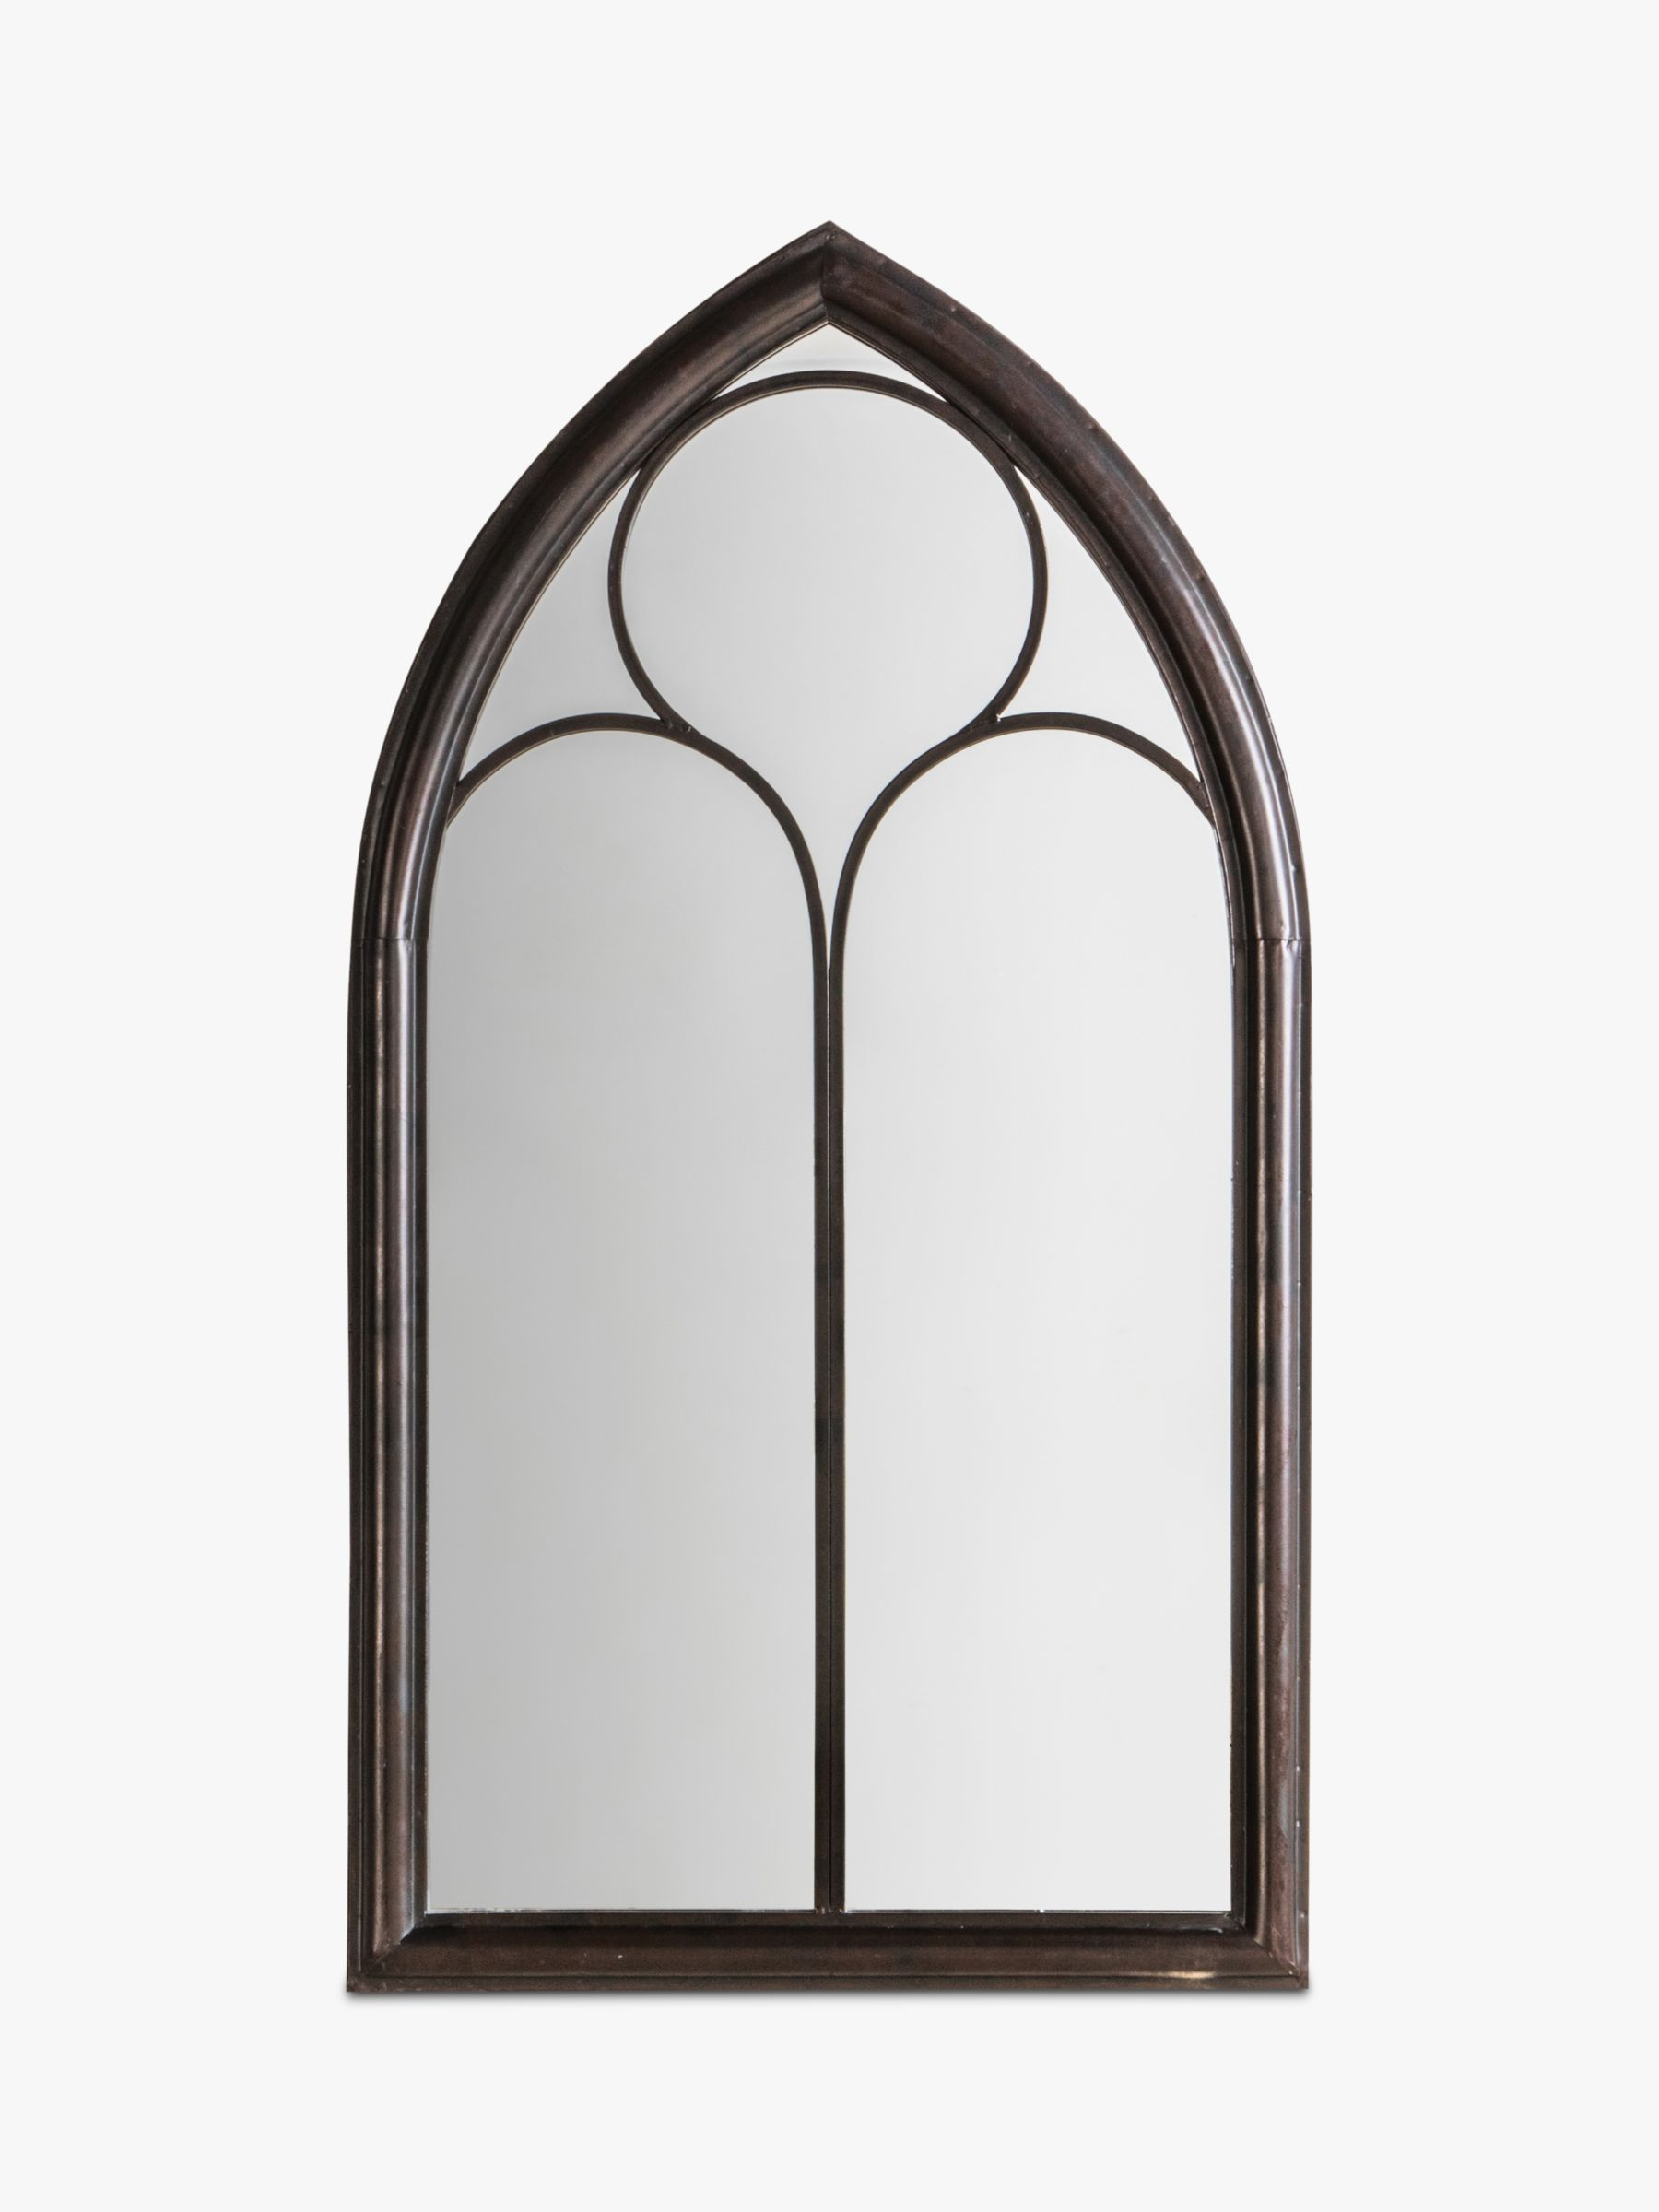 Afur Outdoor Garden Wall Arched Mirror, 112 x 61cm, Antique Noir